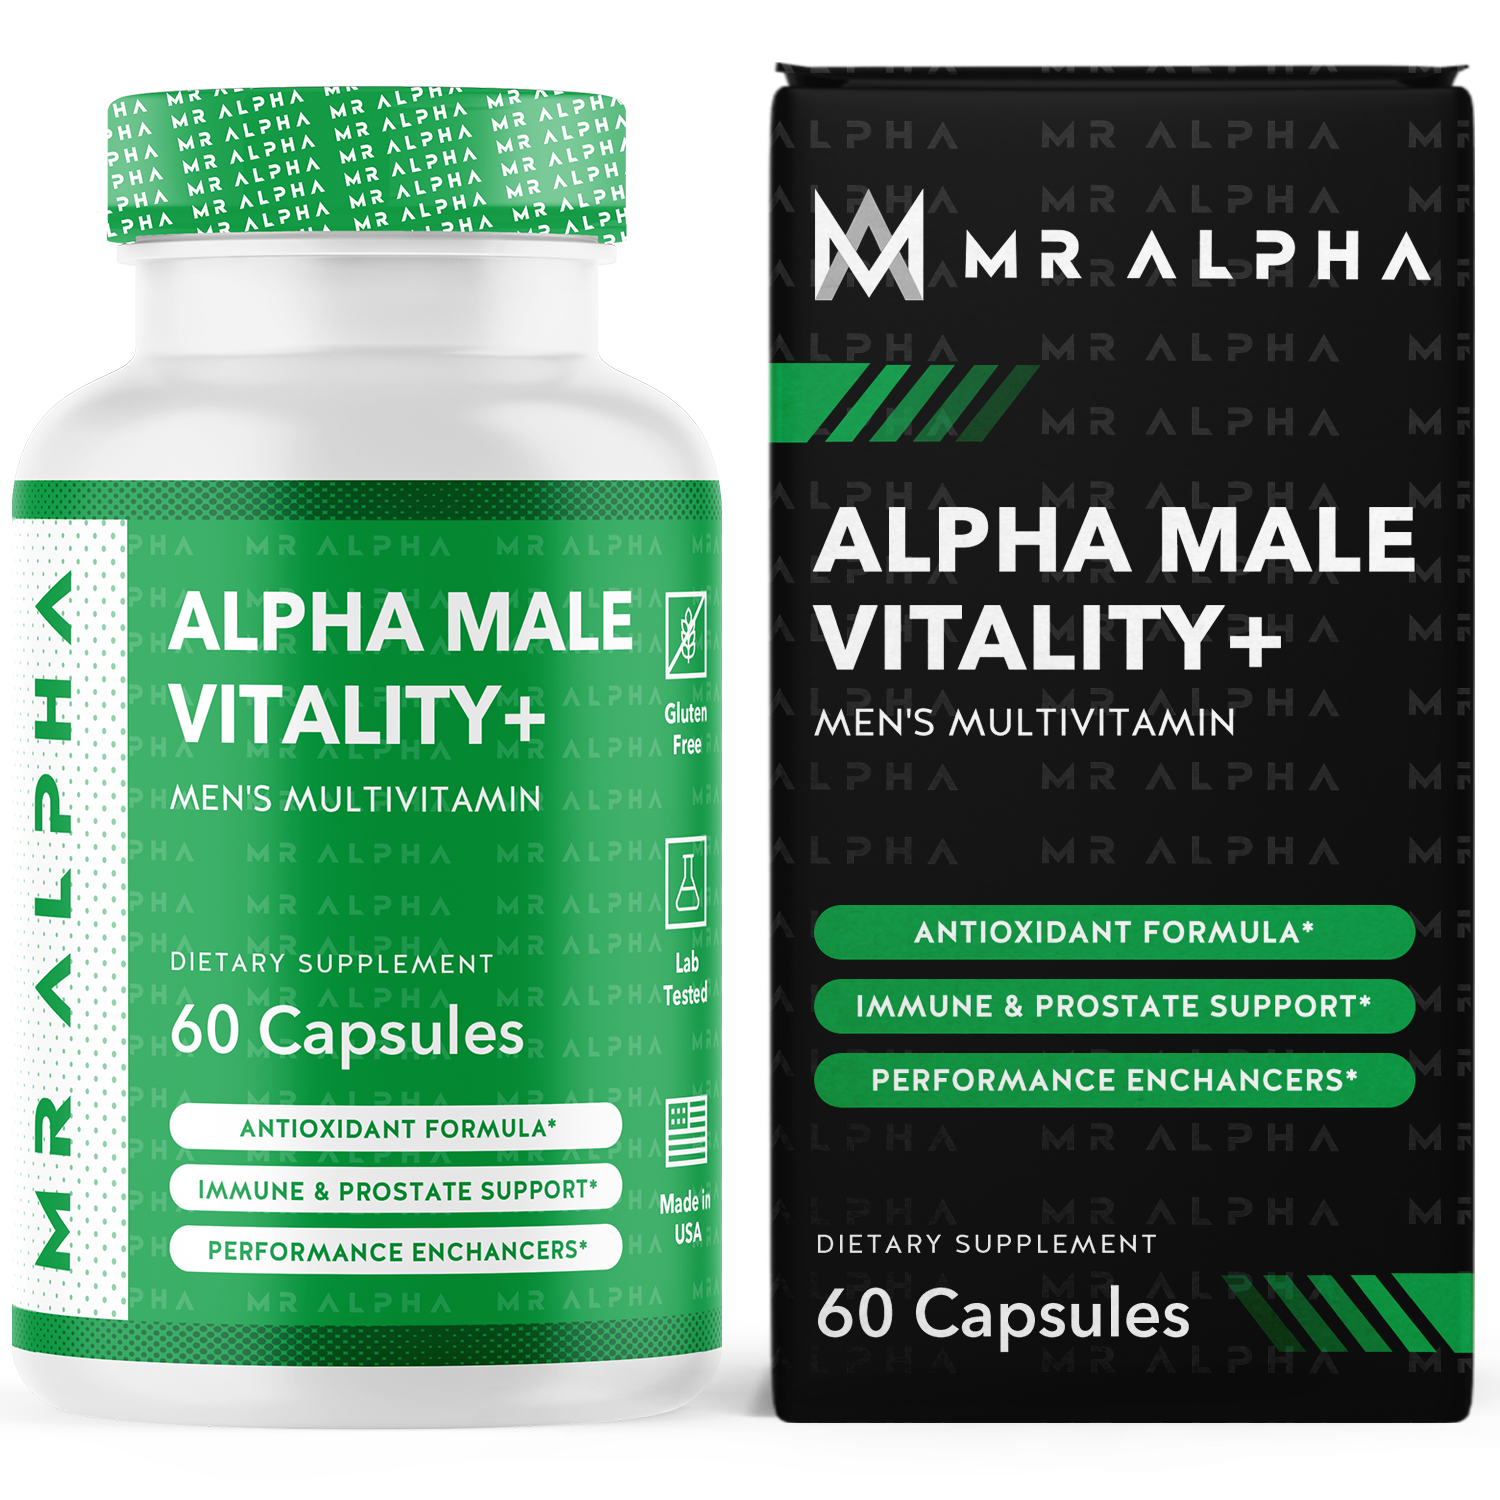 ALPHA MALE VITALITY+ - 3 Month Supply